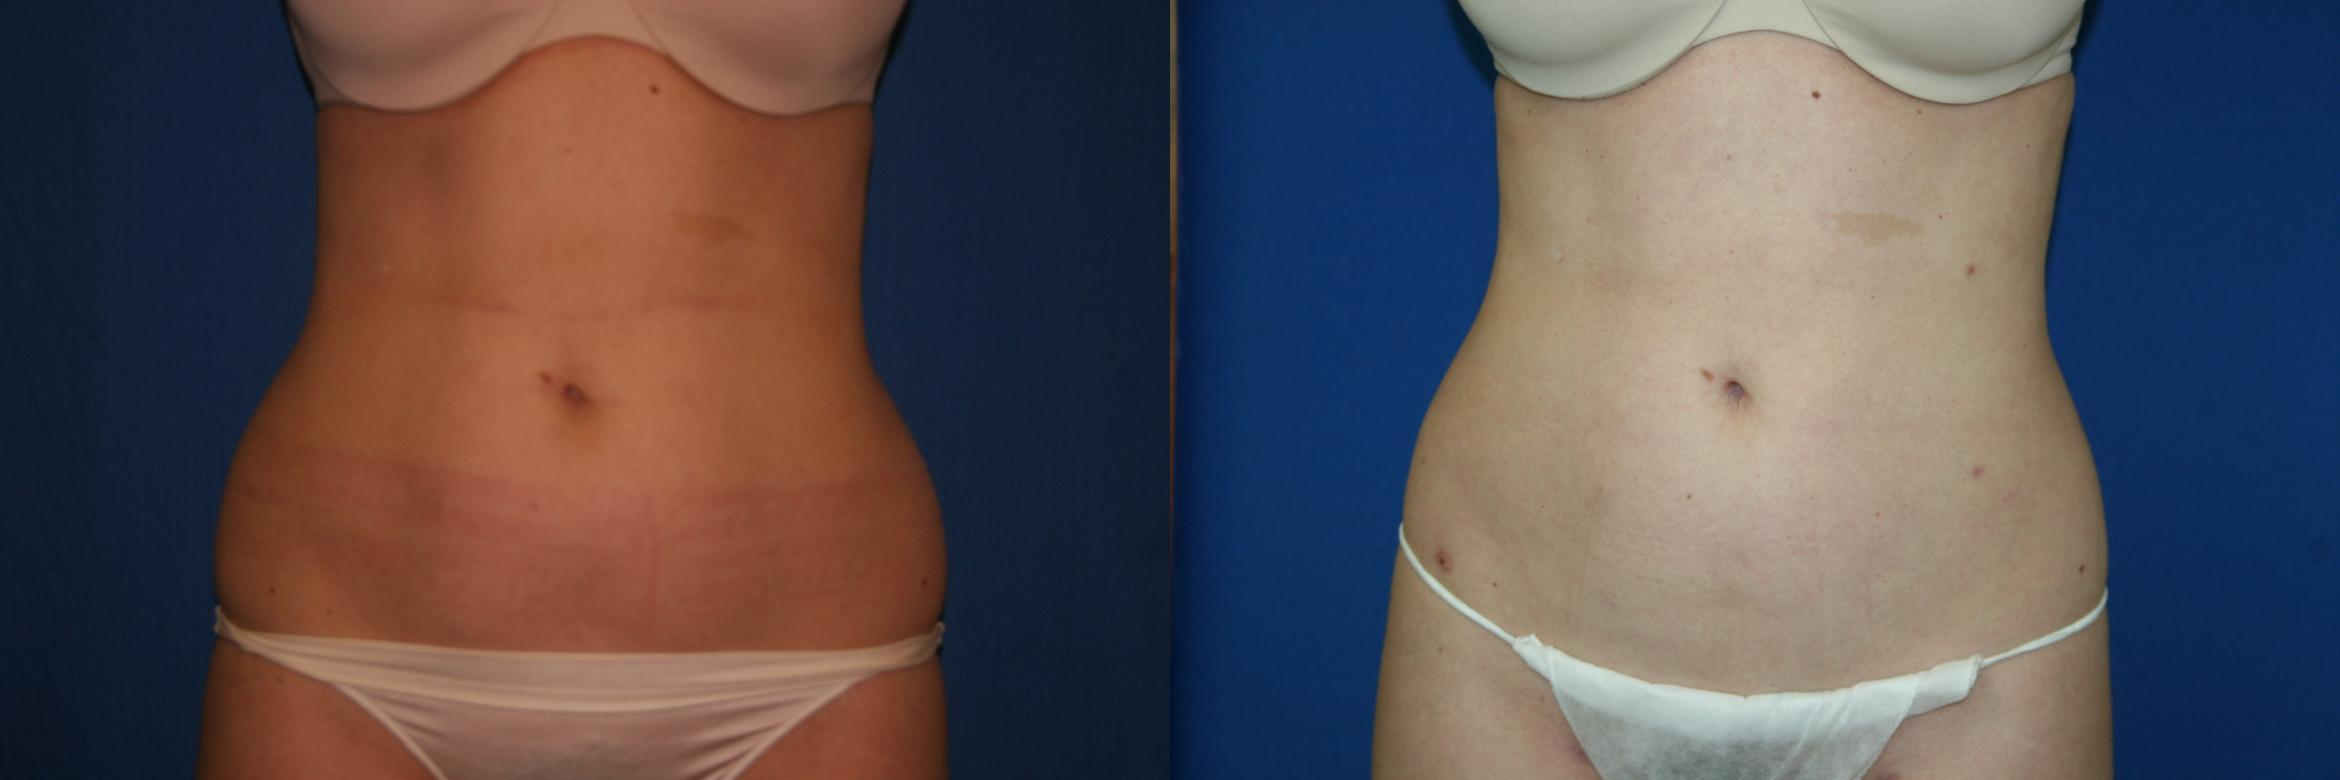 Liposuction Case 25 Before & After View #1 | Palo Alto, CA | Daryl K. Hoffman, MD